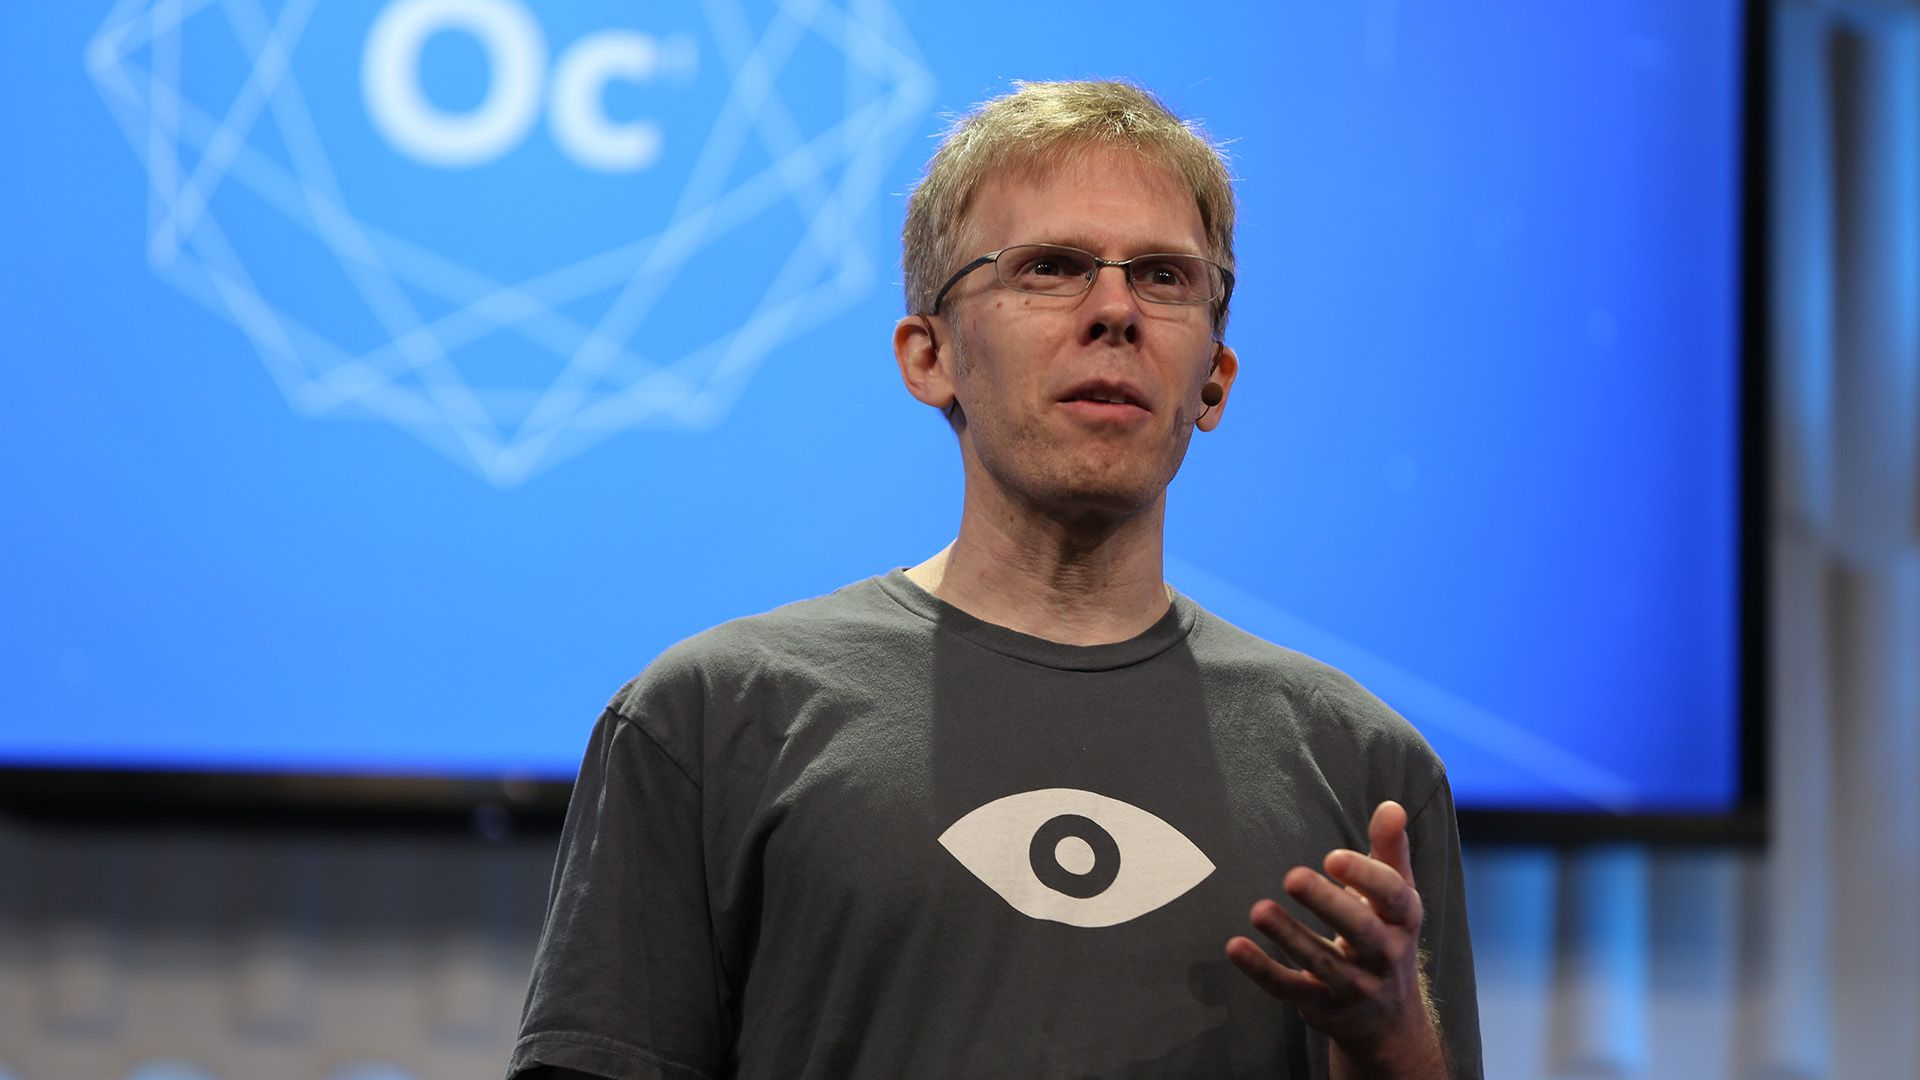 Hate The Oculus-Facebook Login Requirement? John Carmack Confirms It's Here To Stay...